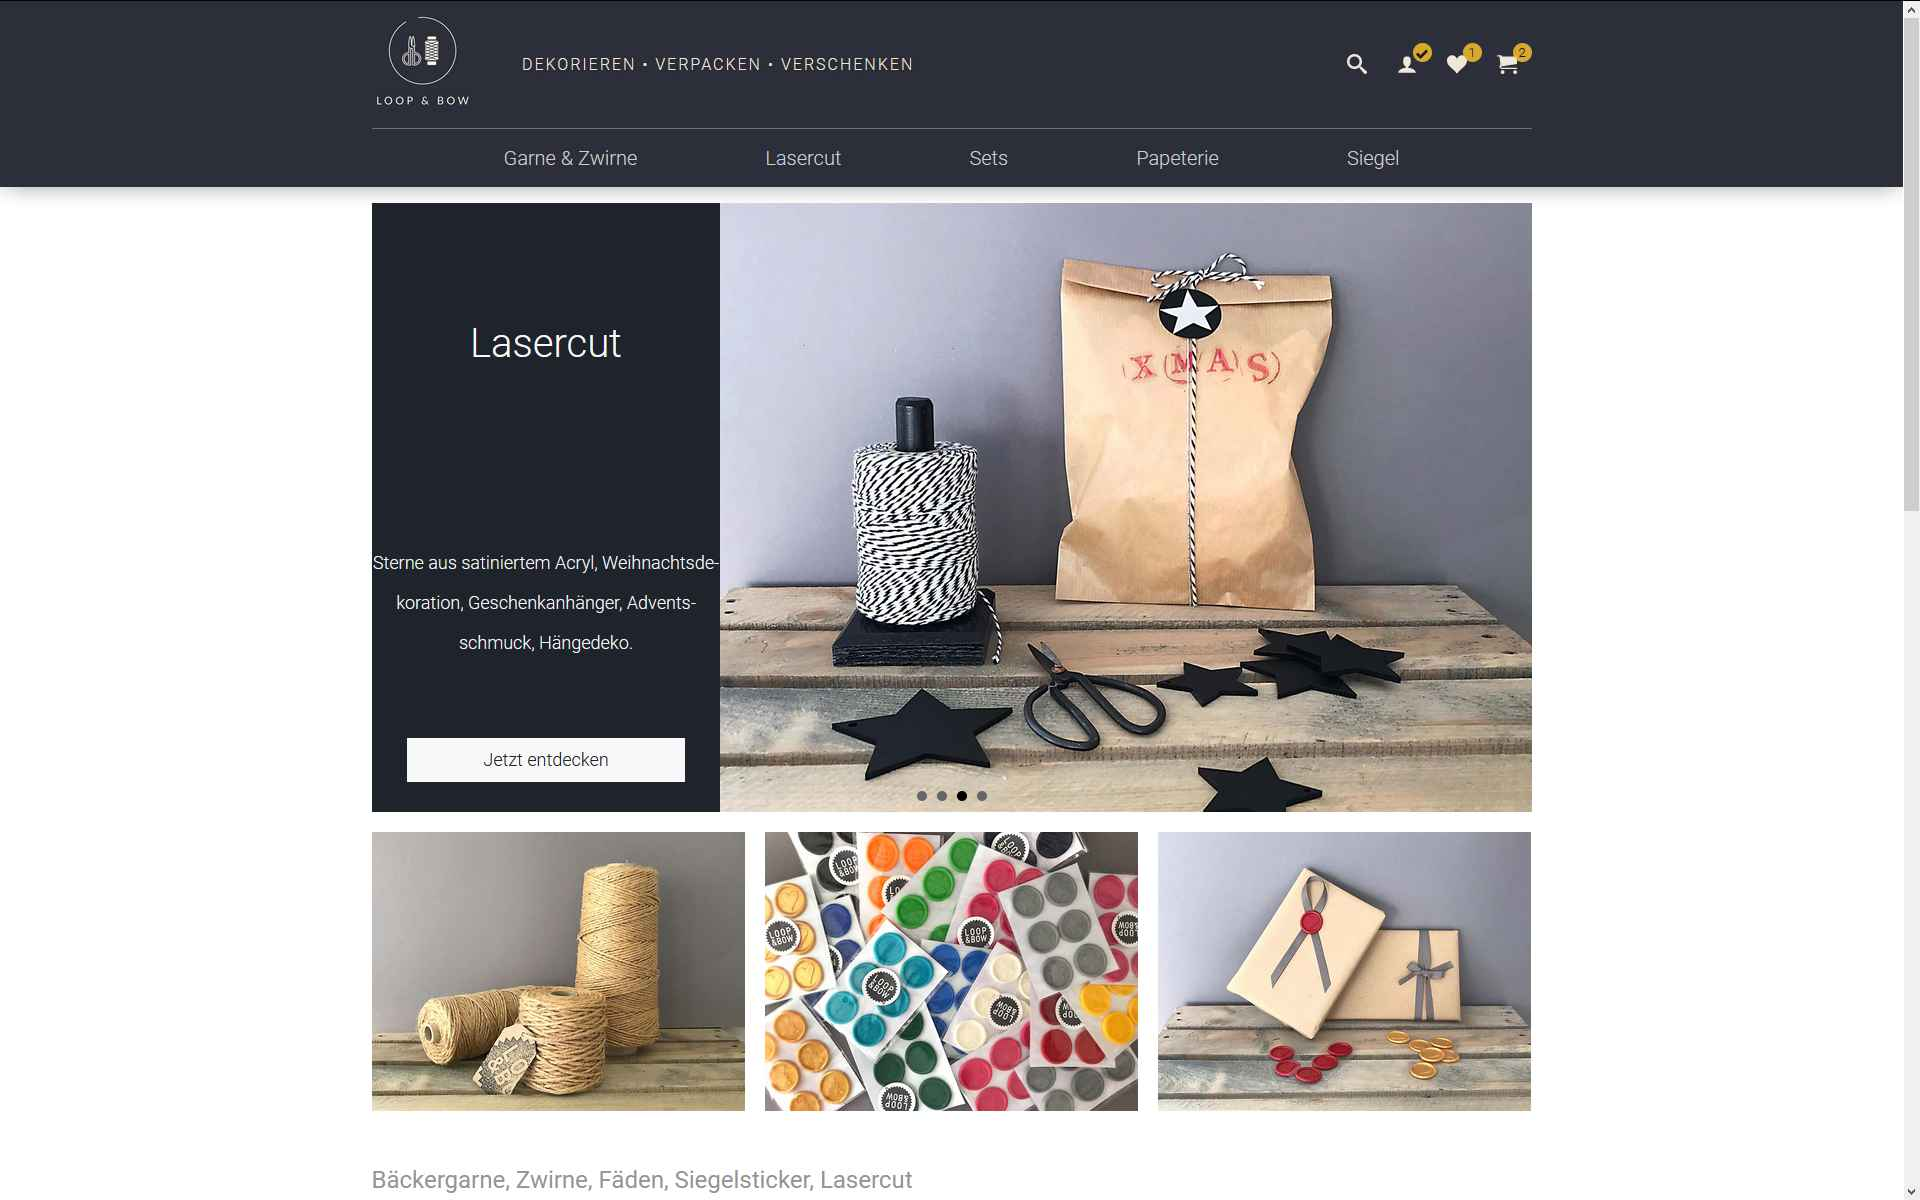 Onlineshop von LOOP & BOW